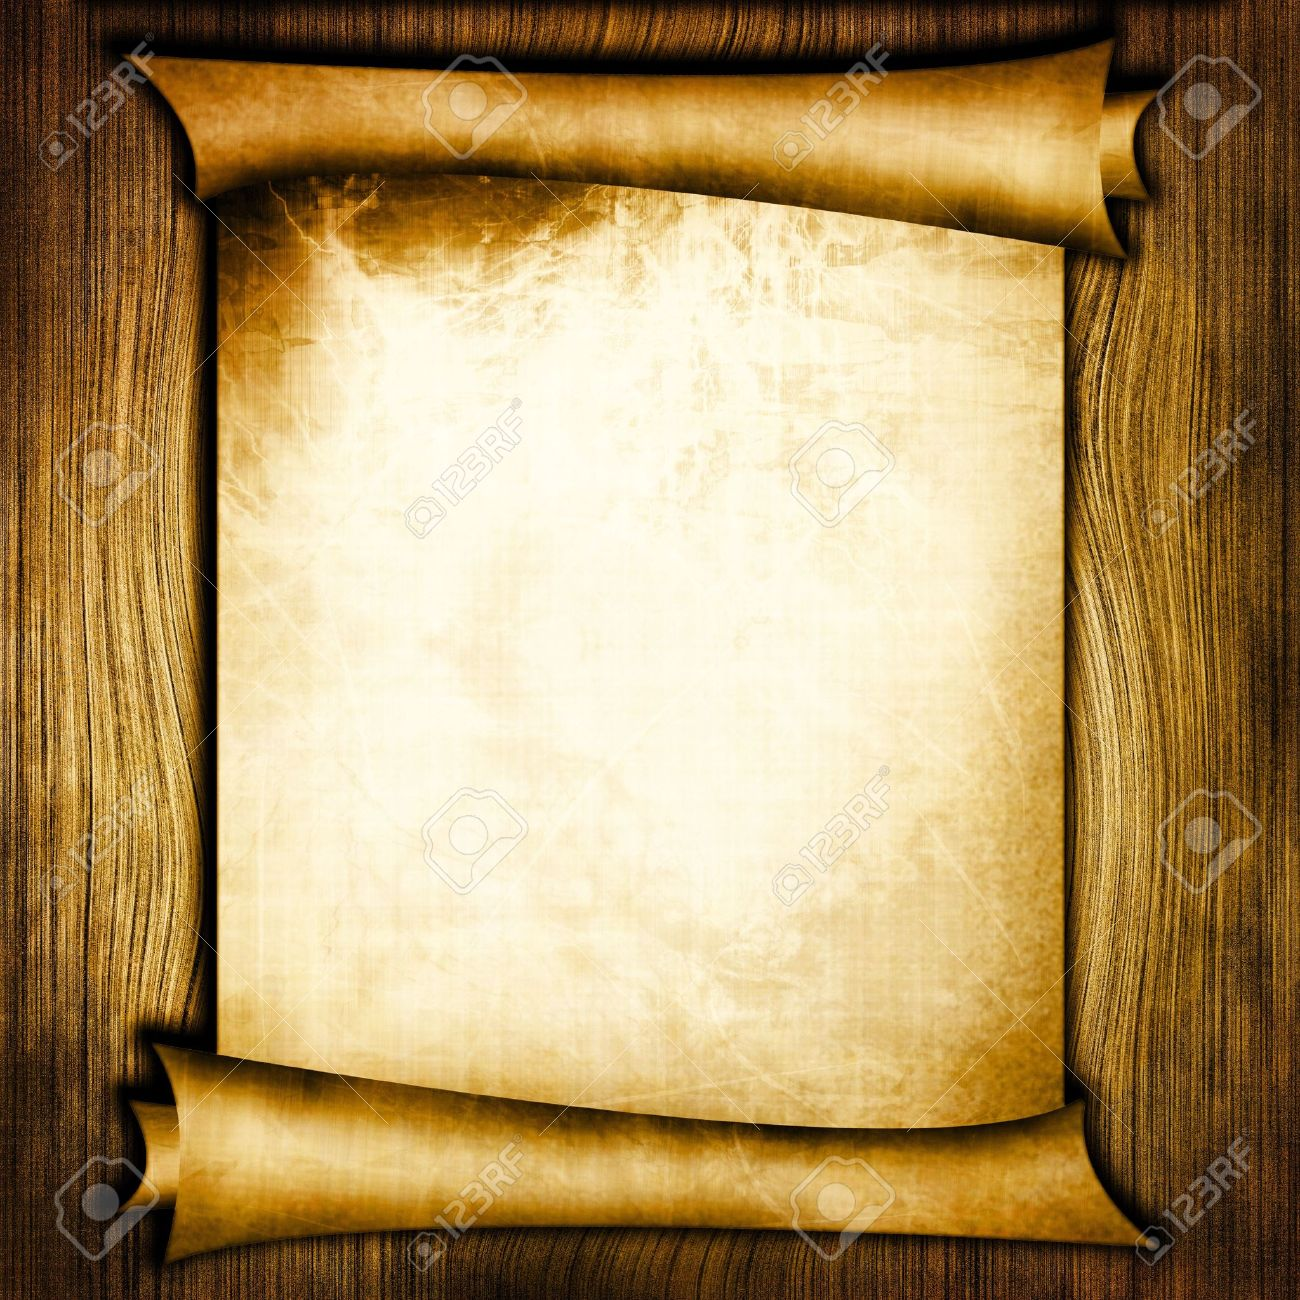 ancient scroll on wooden background stock photo, picture and, Powerpoint templates